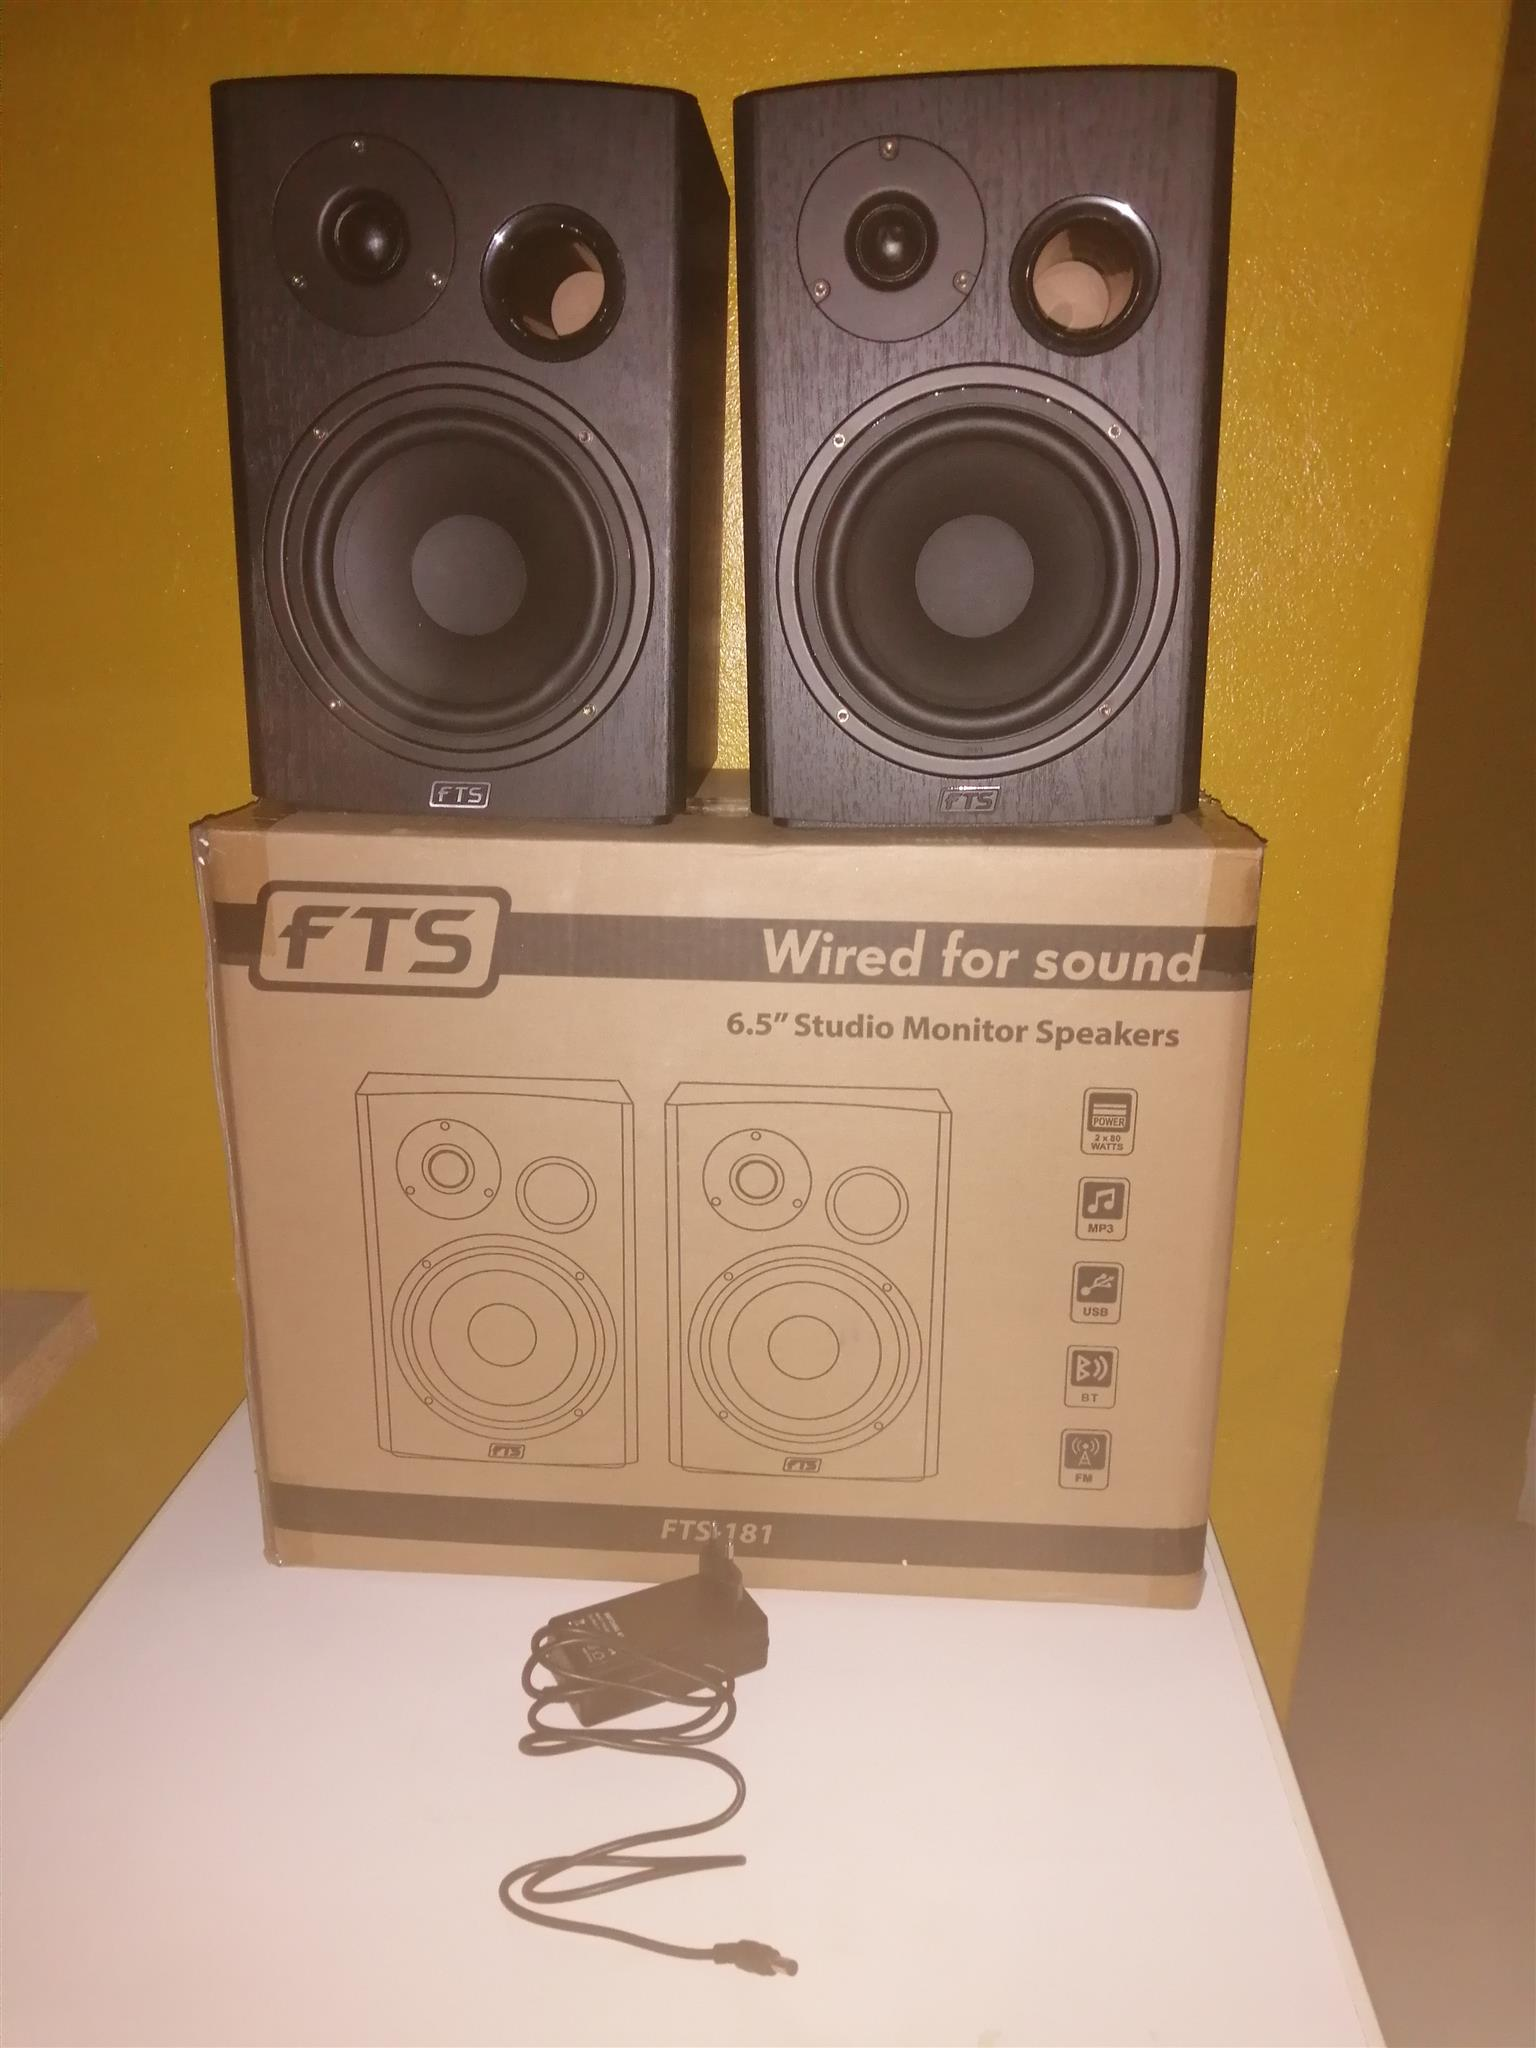 speakers 6 5 studio monitor fts 181 brand new including 6 month guarantee alberton jhb. Black Bedroom Furniture Sets. Home Design Ideas